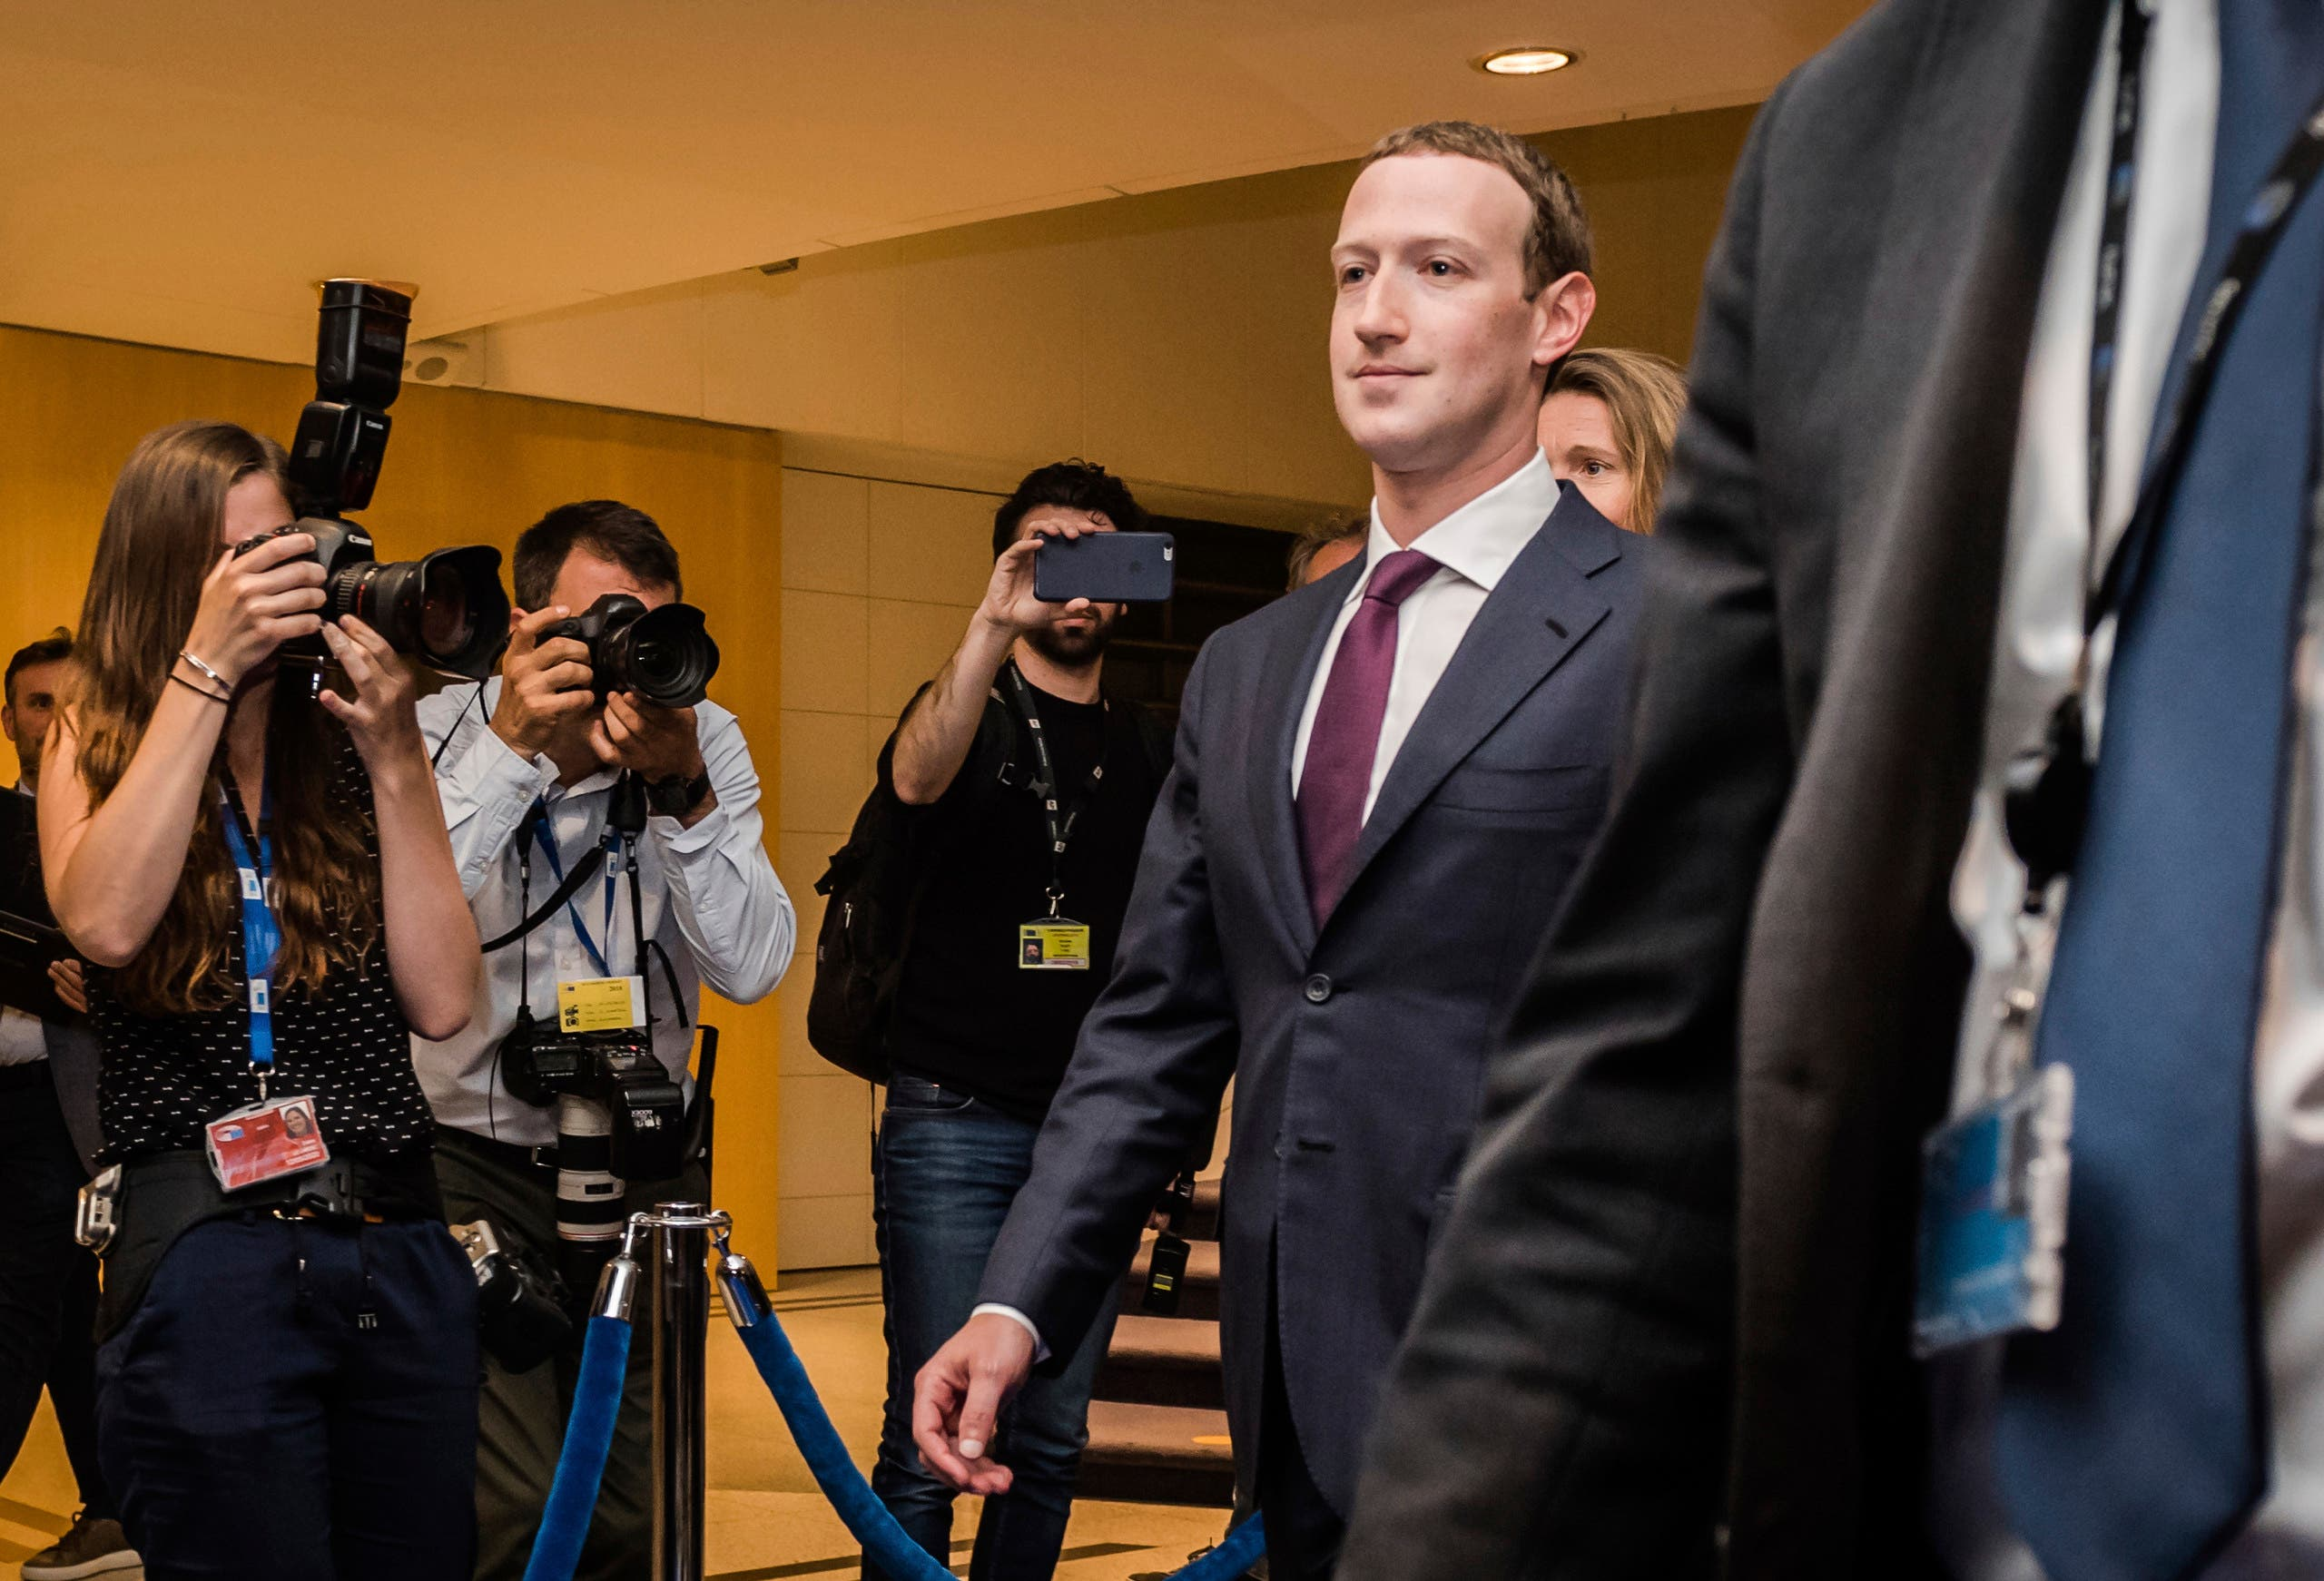 Facebook CEO Mark Zuckerberg leaves the EU Parliament in Brussels during a series of meetings over data protection standards at the internet giant and alleged misuse of the personal information, on May 22, 2018. (File Photo: AP)